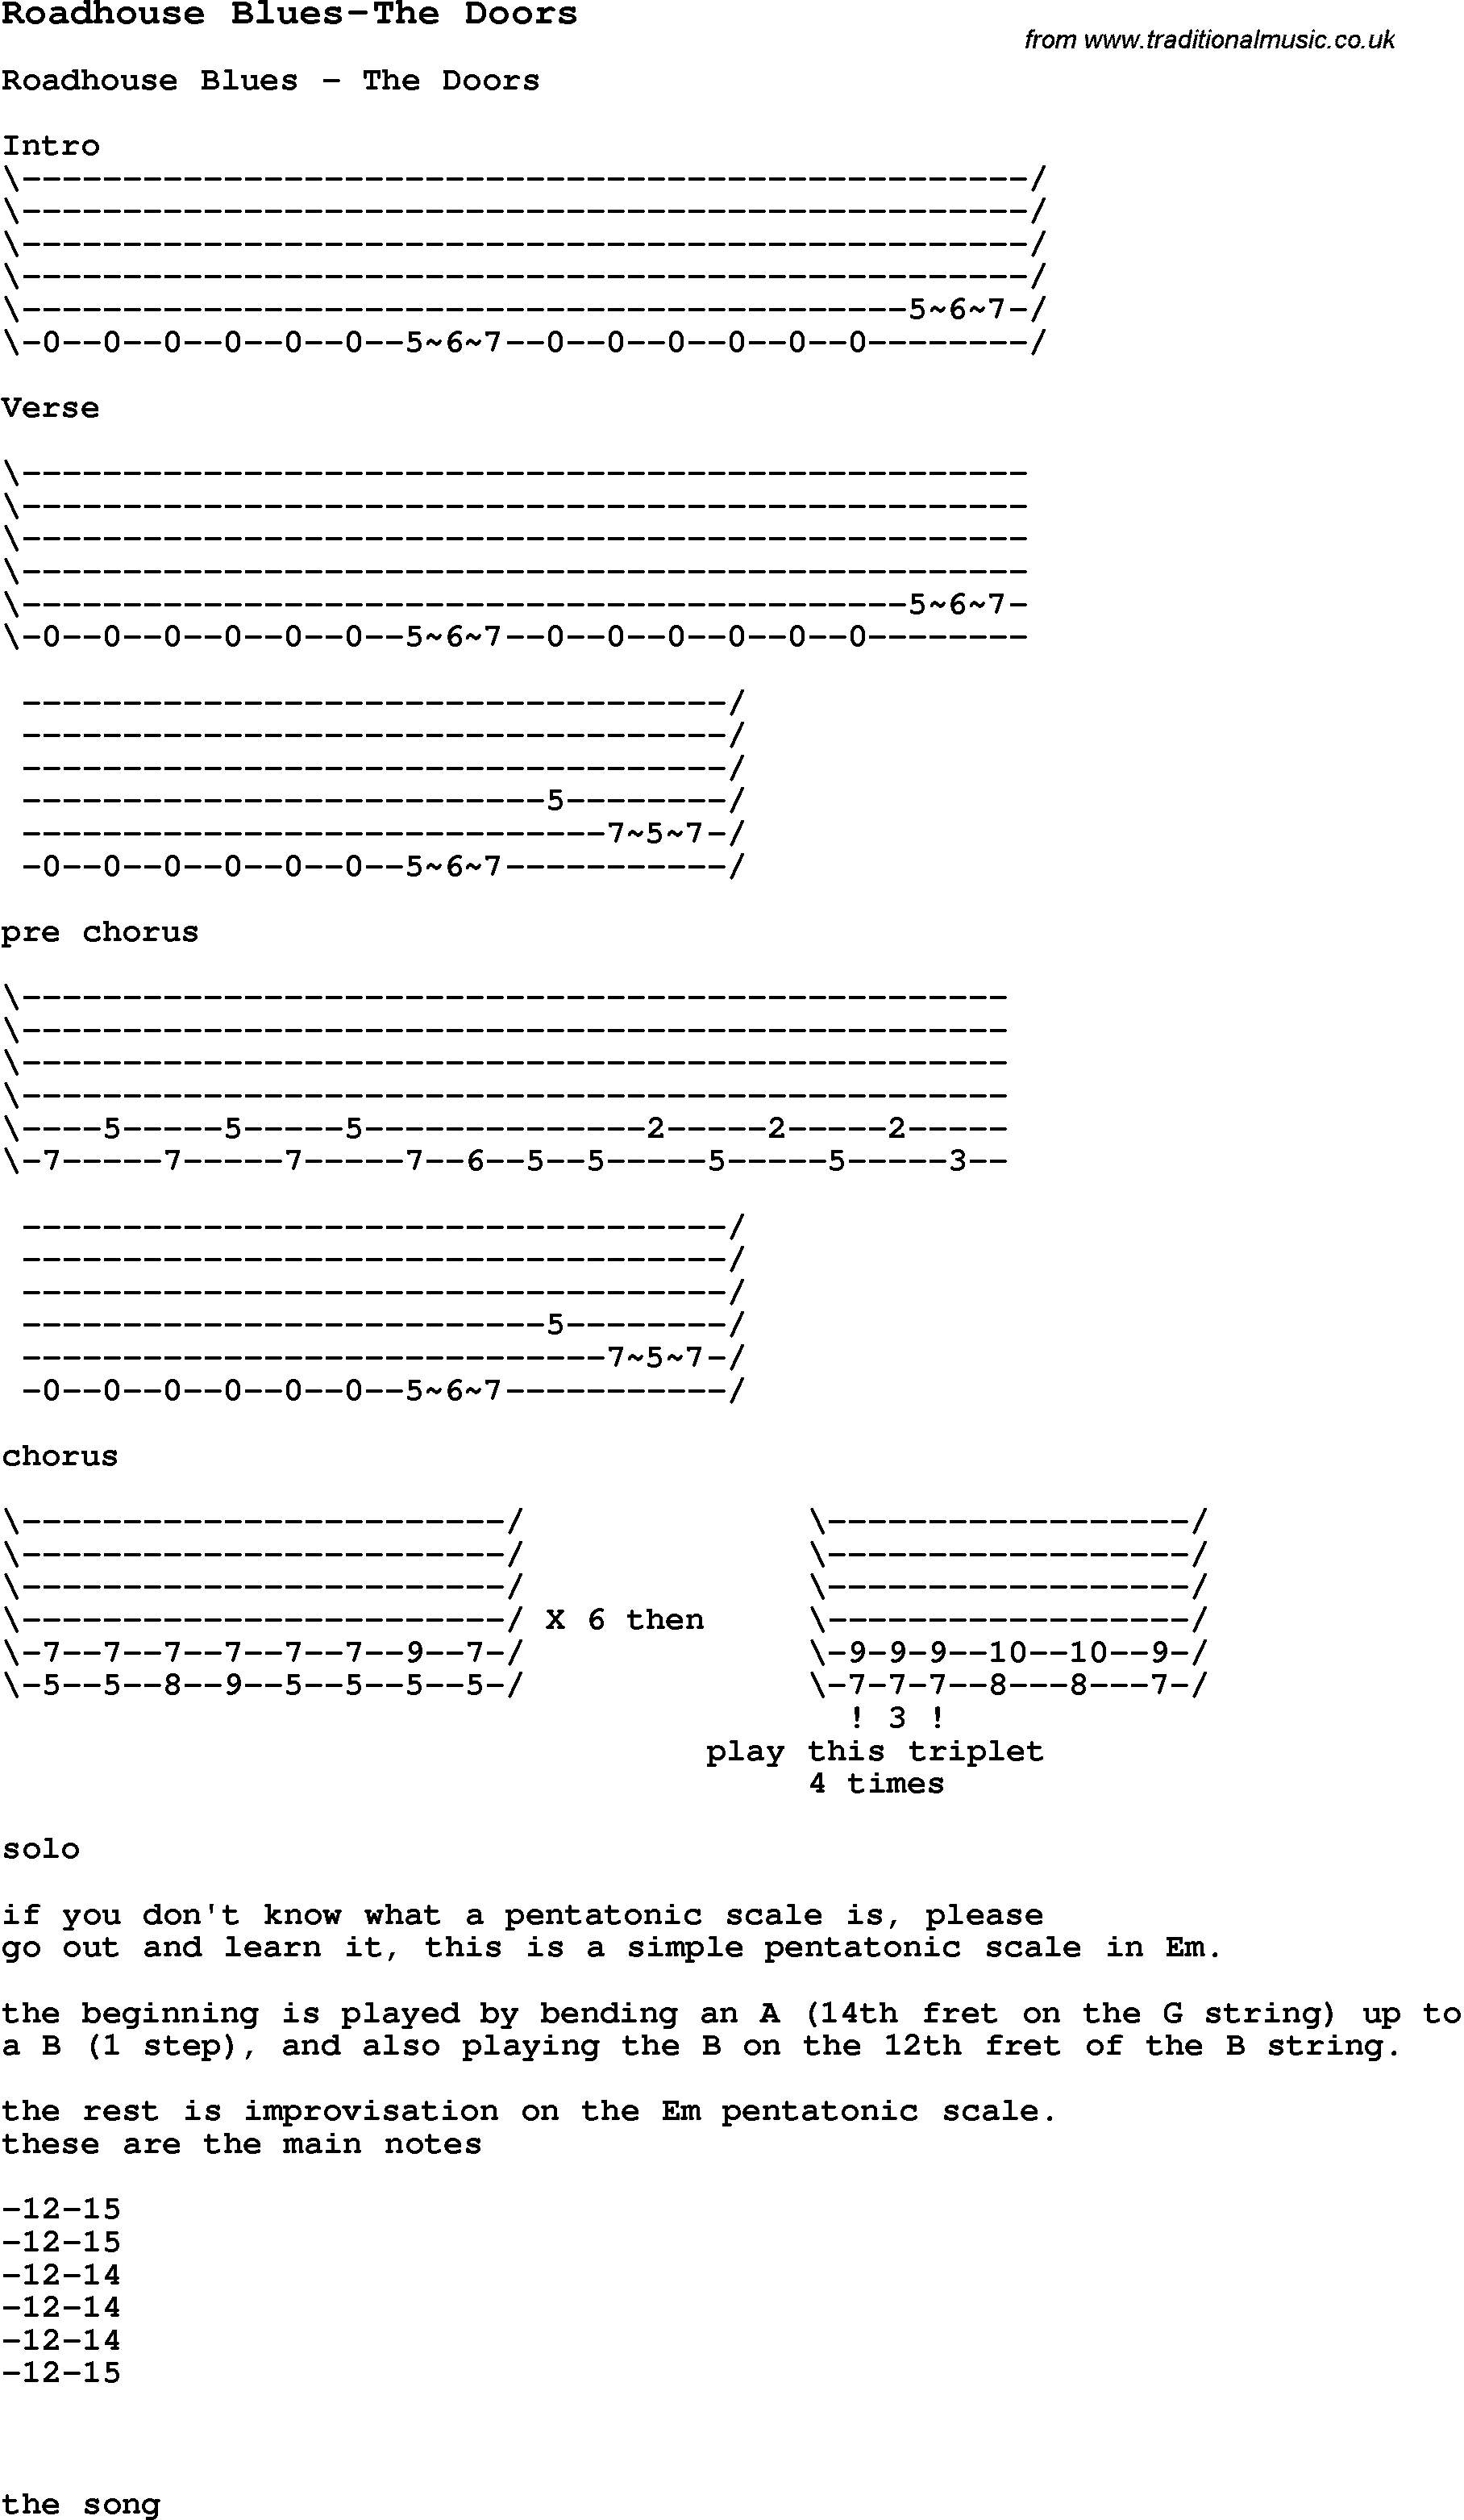 Roadhouse blues guitar chords